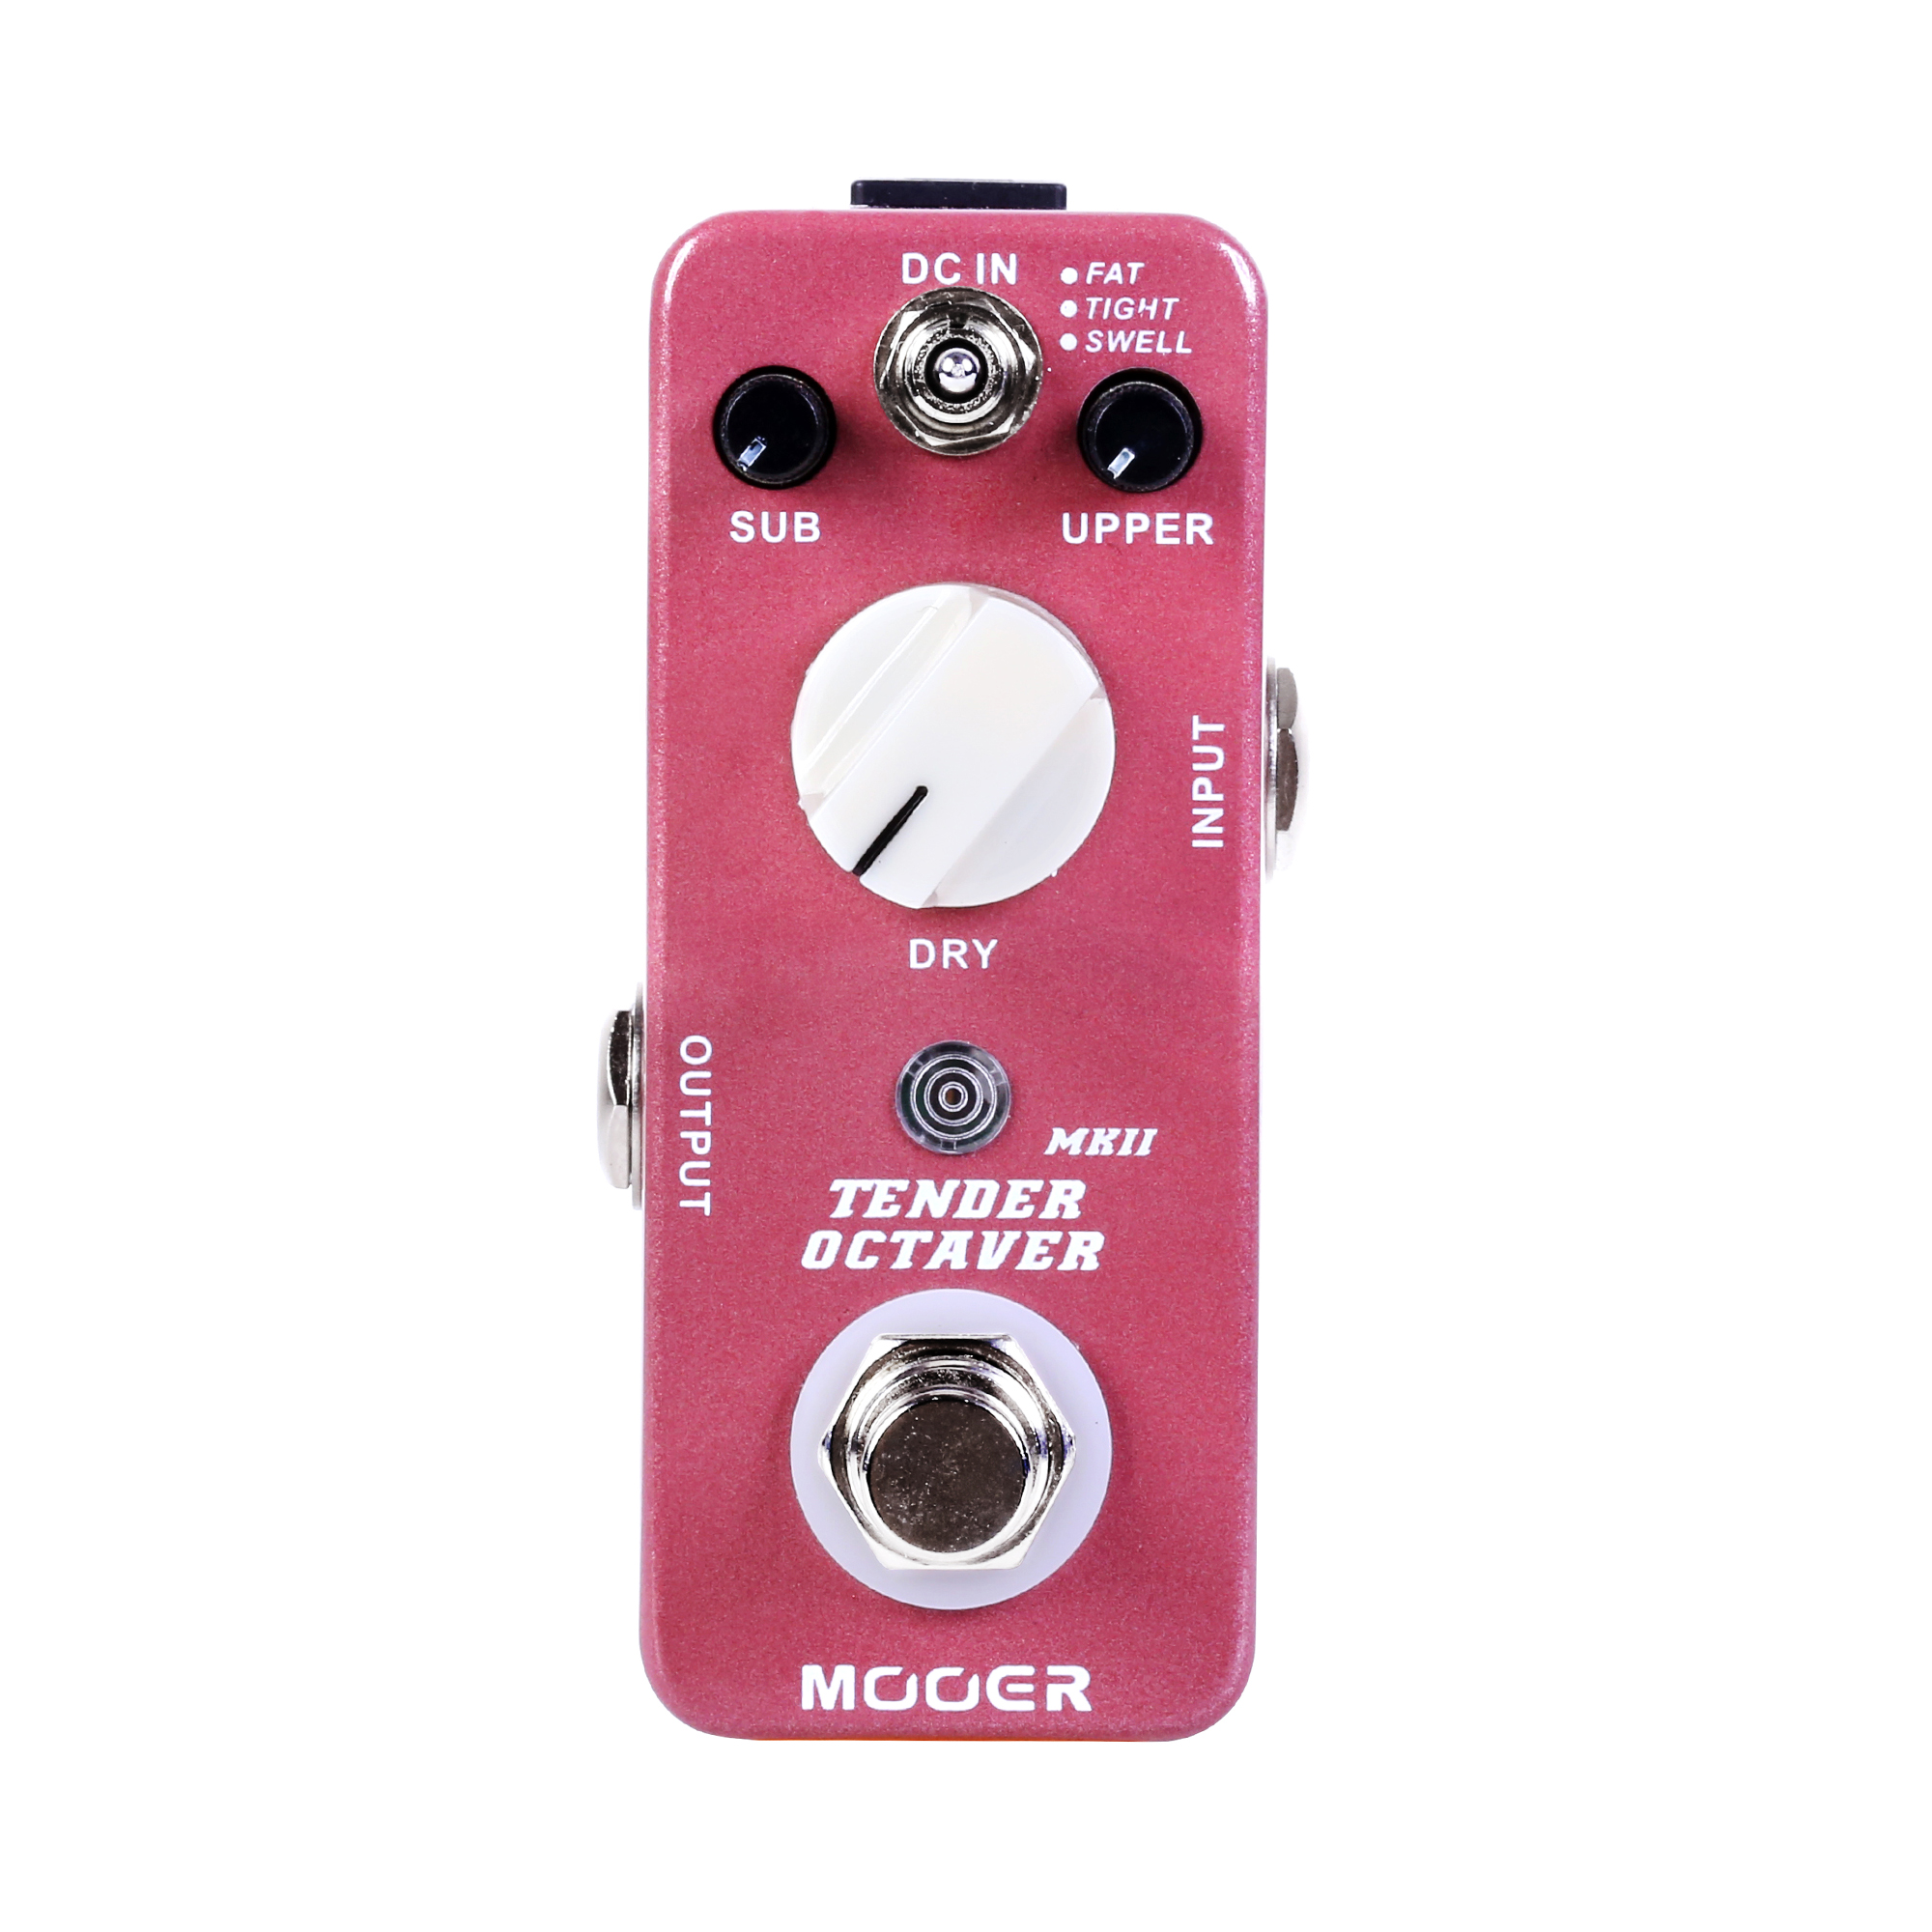 Mooer Tender Octaver MKII Precise Octave Guitar Effect Pedal SUB UPPER DRY Controls True Bypass 3 Tones Switch mooer ensemble queen bass chorus effect pedal mini guitar effects true bypass with free connector and footswitch topper